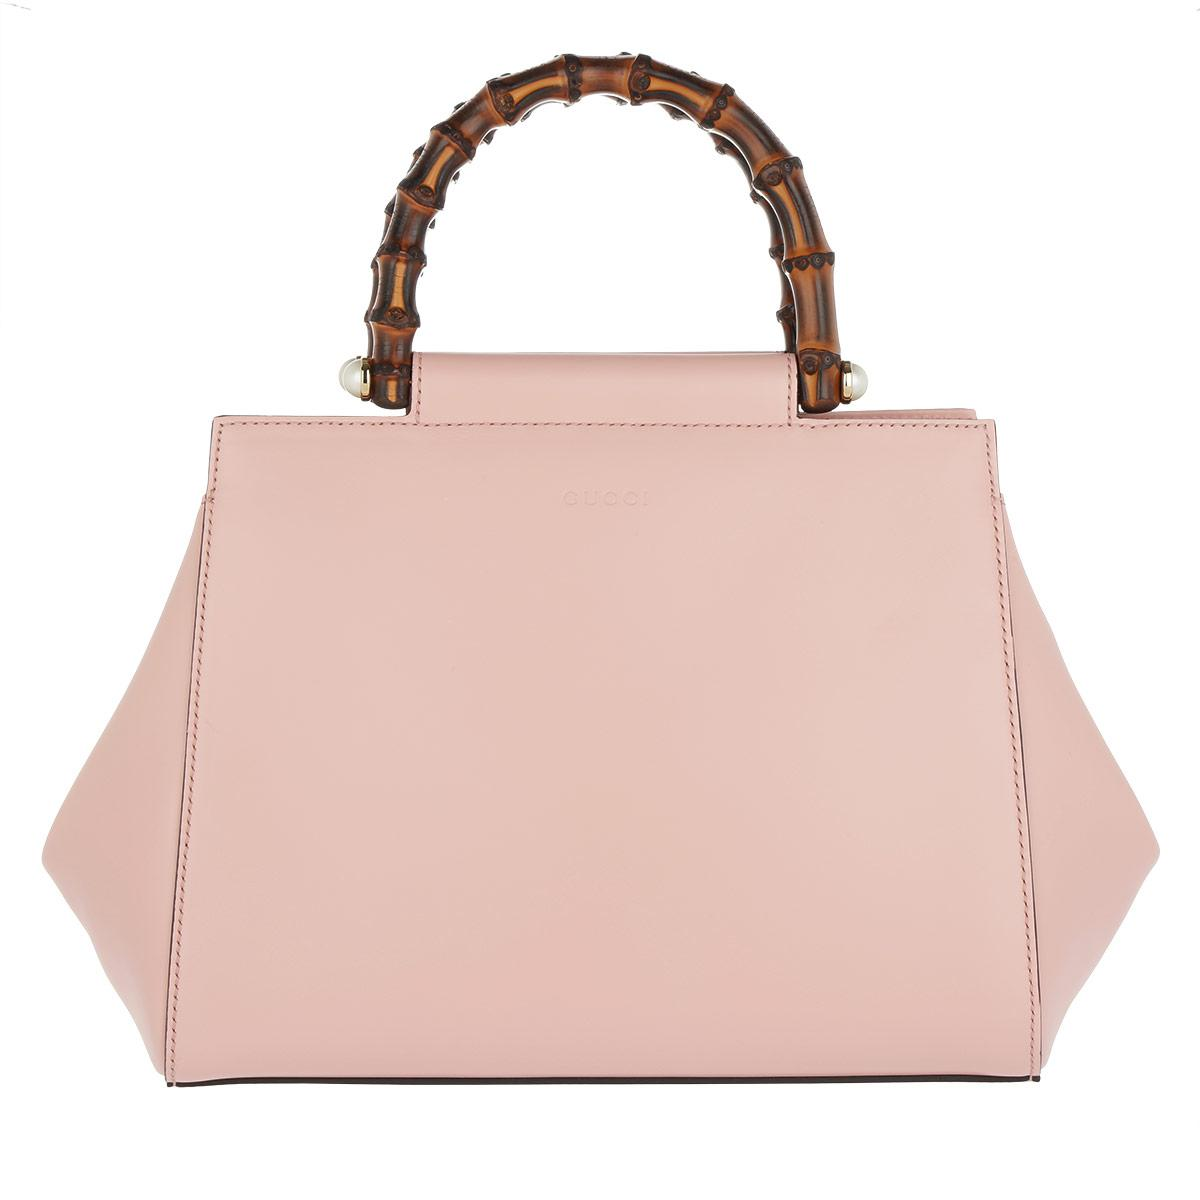 4a070c3eb Gucci Nymphaea Satchel Bag Leather Perfect Pink in Pink - Lyst